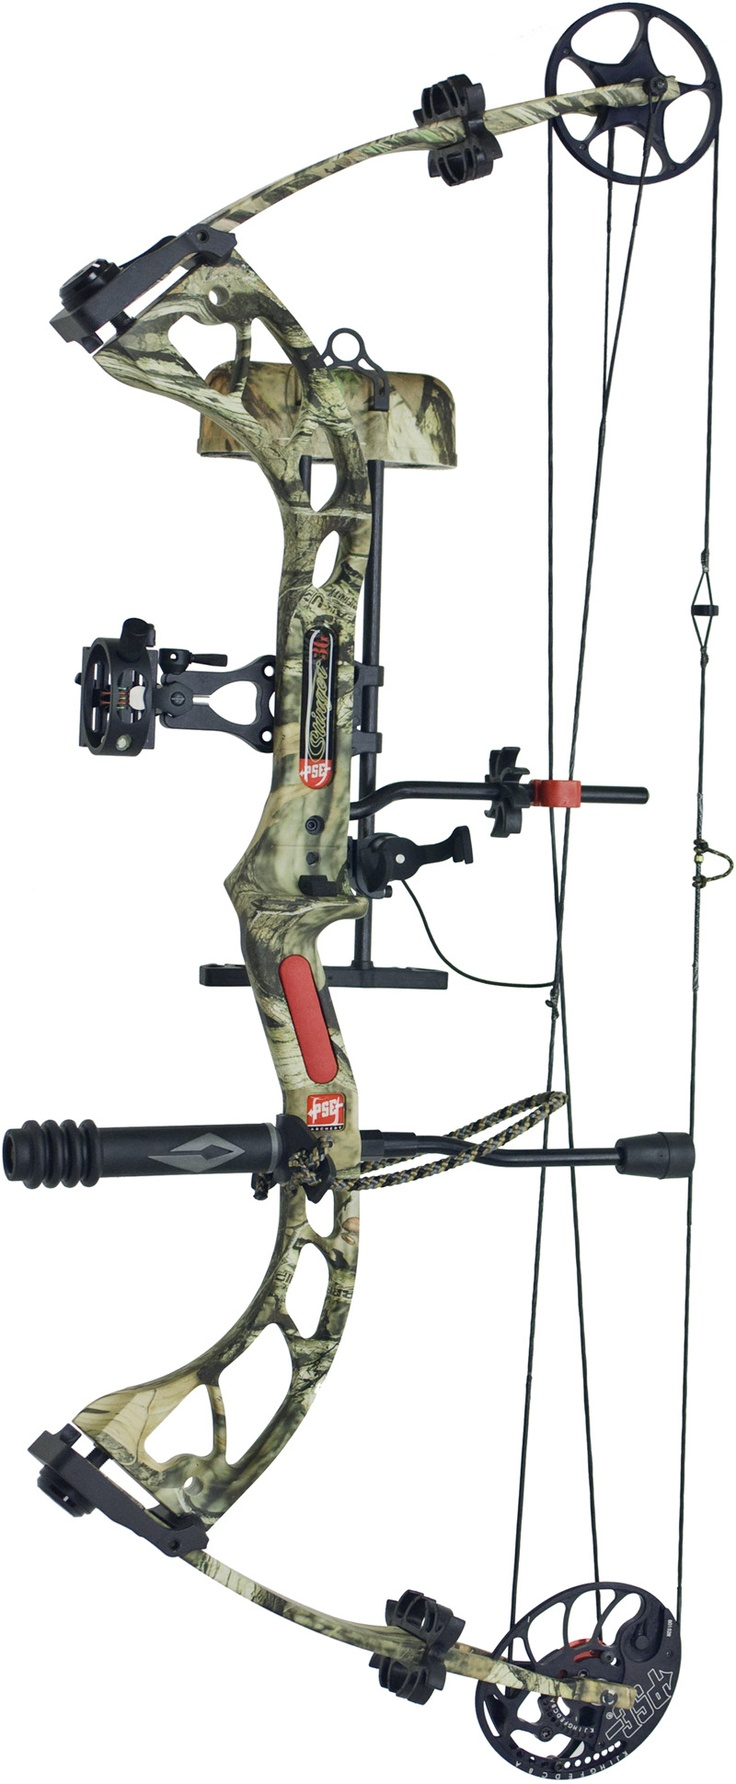 2012 PSE Stinger Compound Bow. I got mine in black.